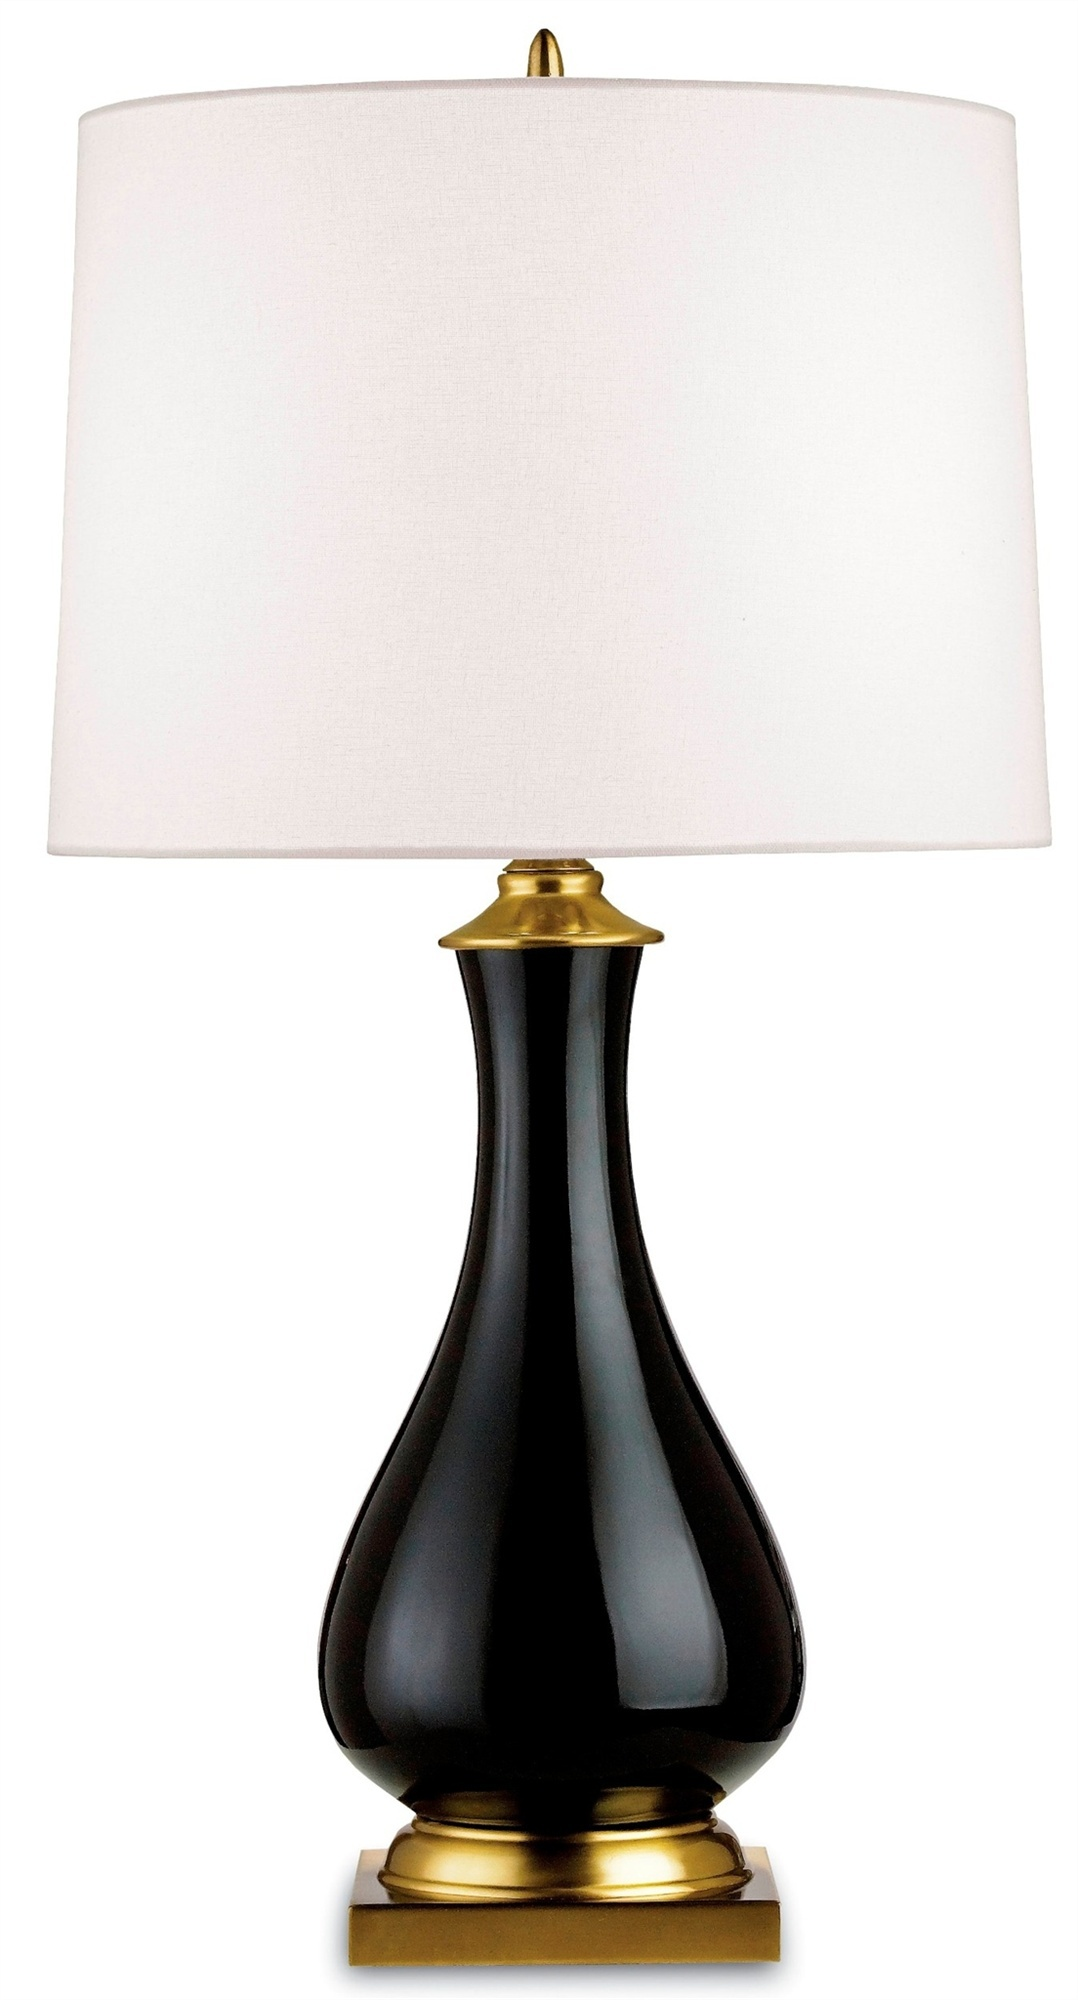 Crackle Table Lamp Black